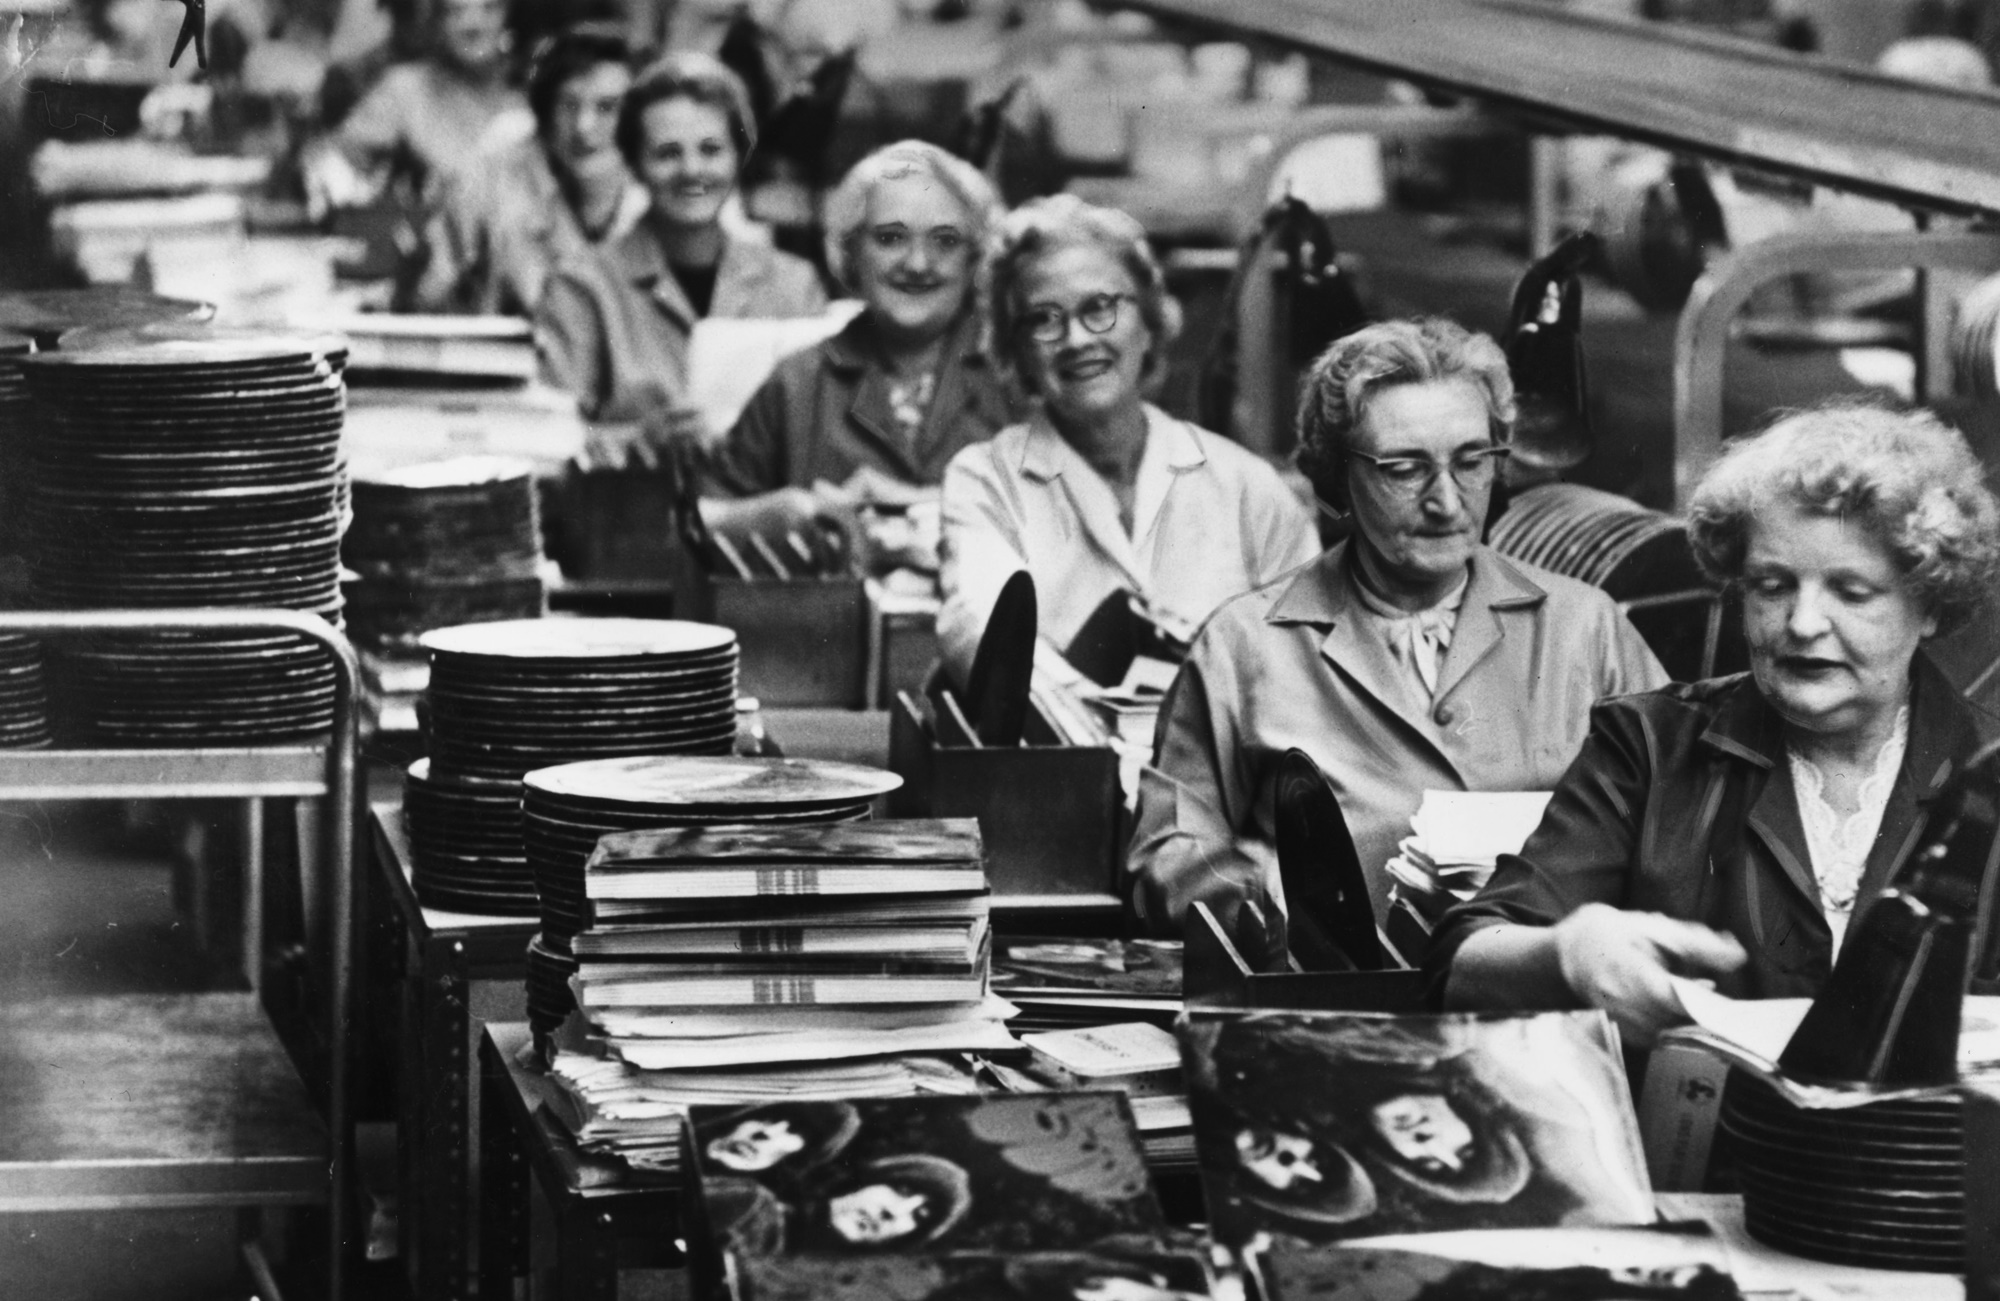 1270676_The-Beatle-Rubber-Soul-in-final-stages-of-production-at-The-Old-Vinyl-Factory-Nov-1965